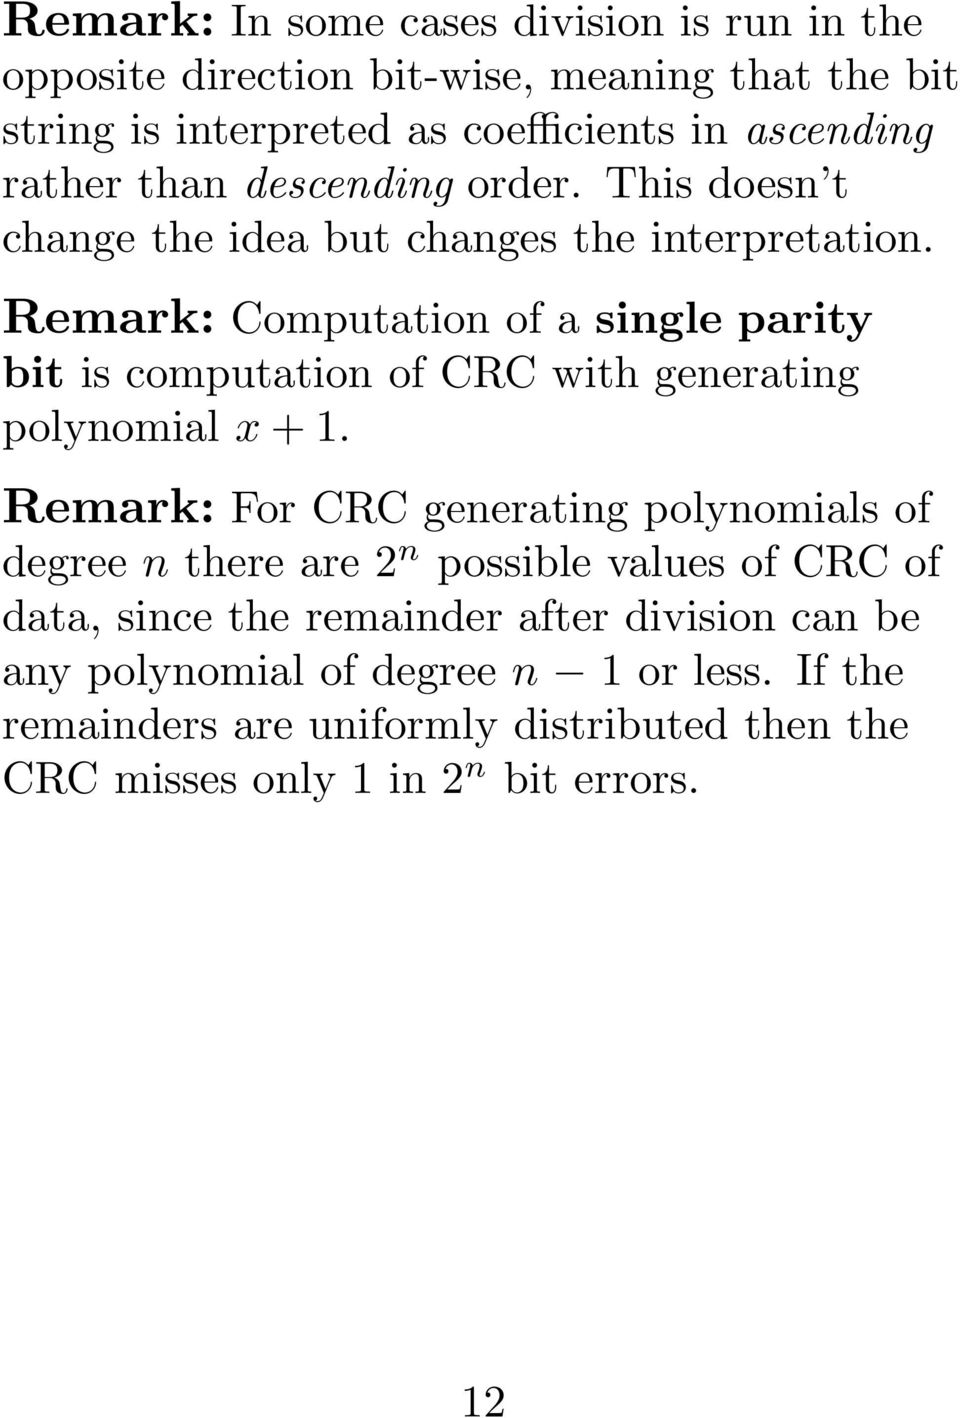 Remark: Computation of a single parity bit is computation of CRC with generating polynomial x + 1.